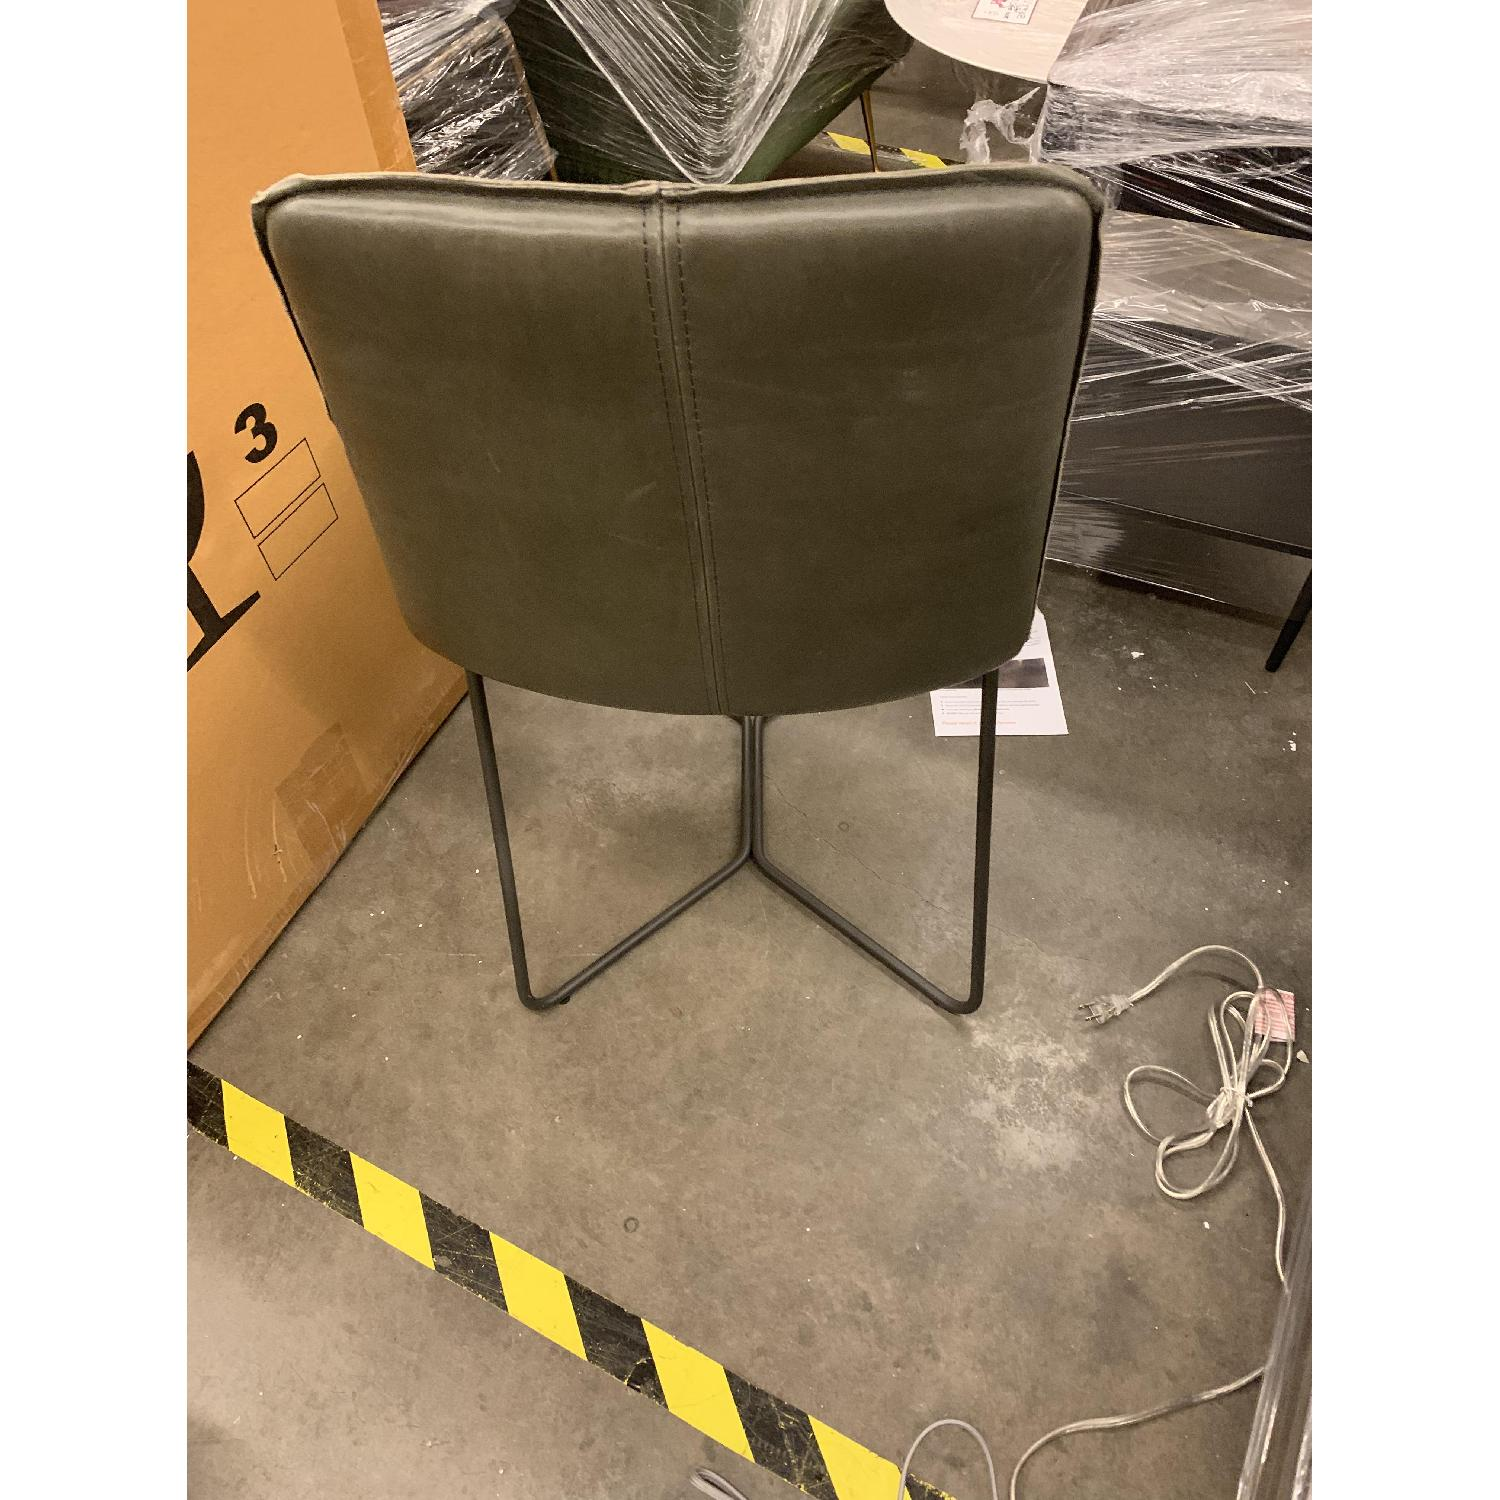 West Elm Slope Dining Chair in Charcoal Leather - image-3